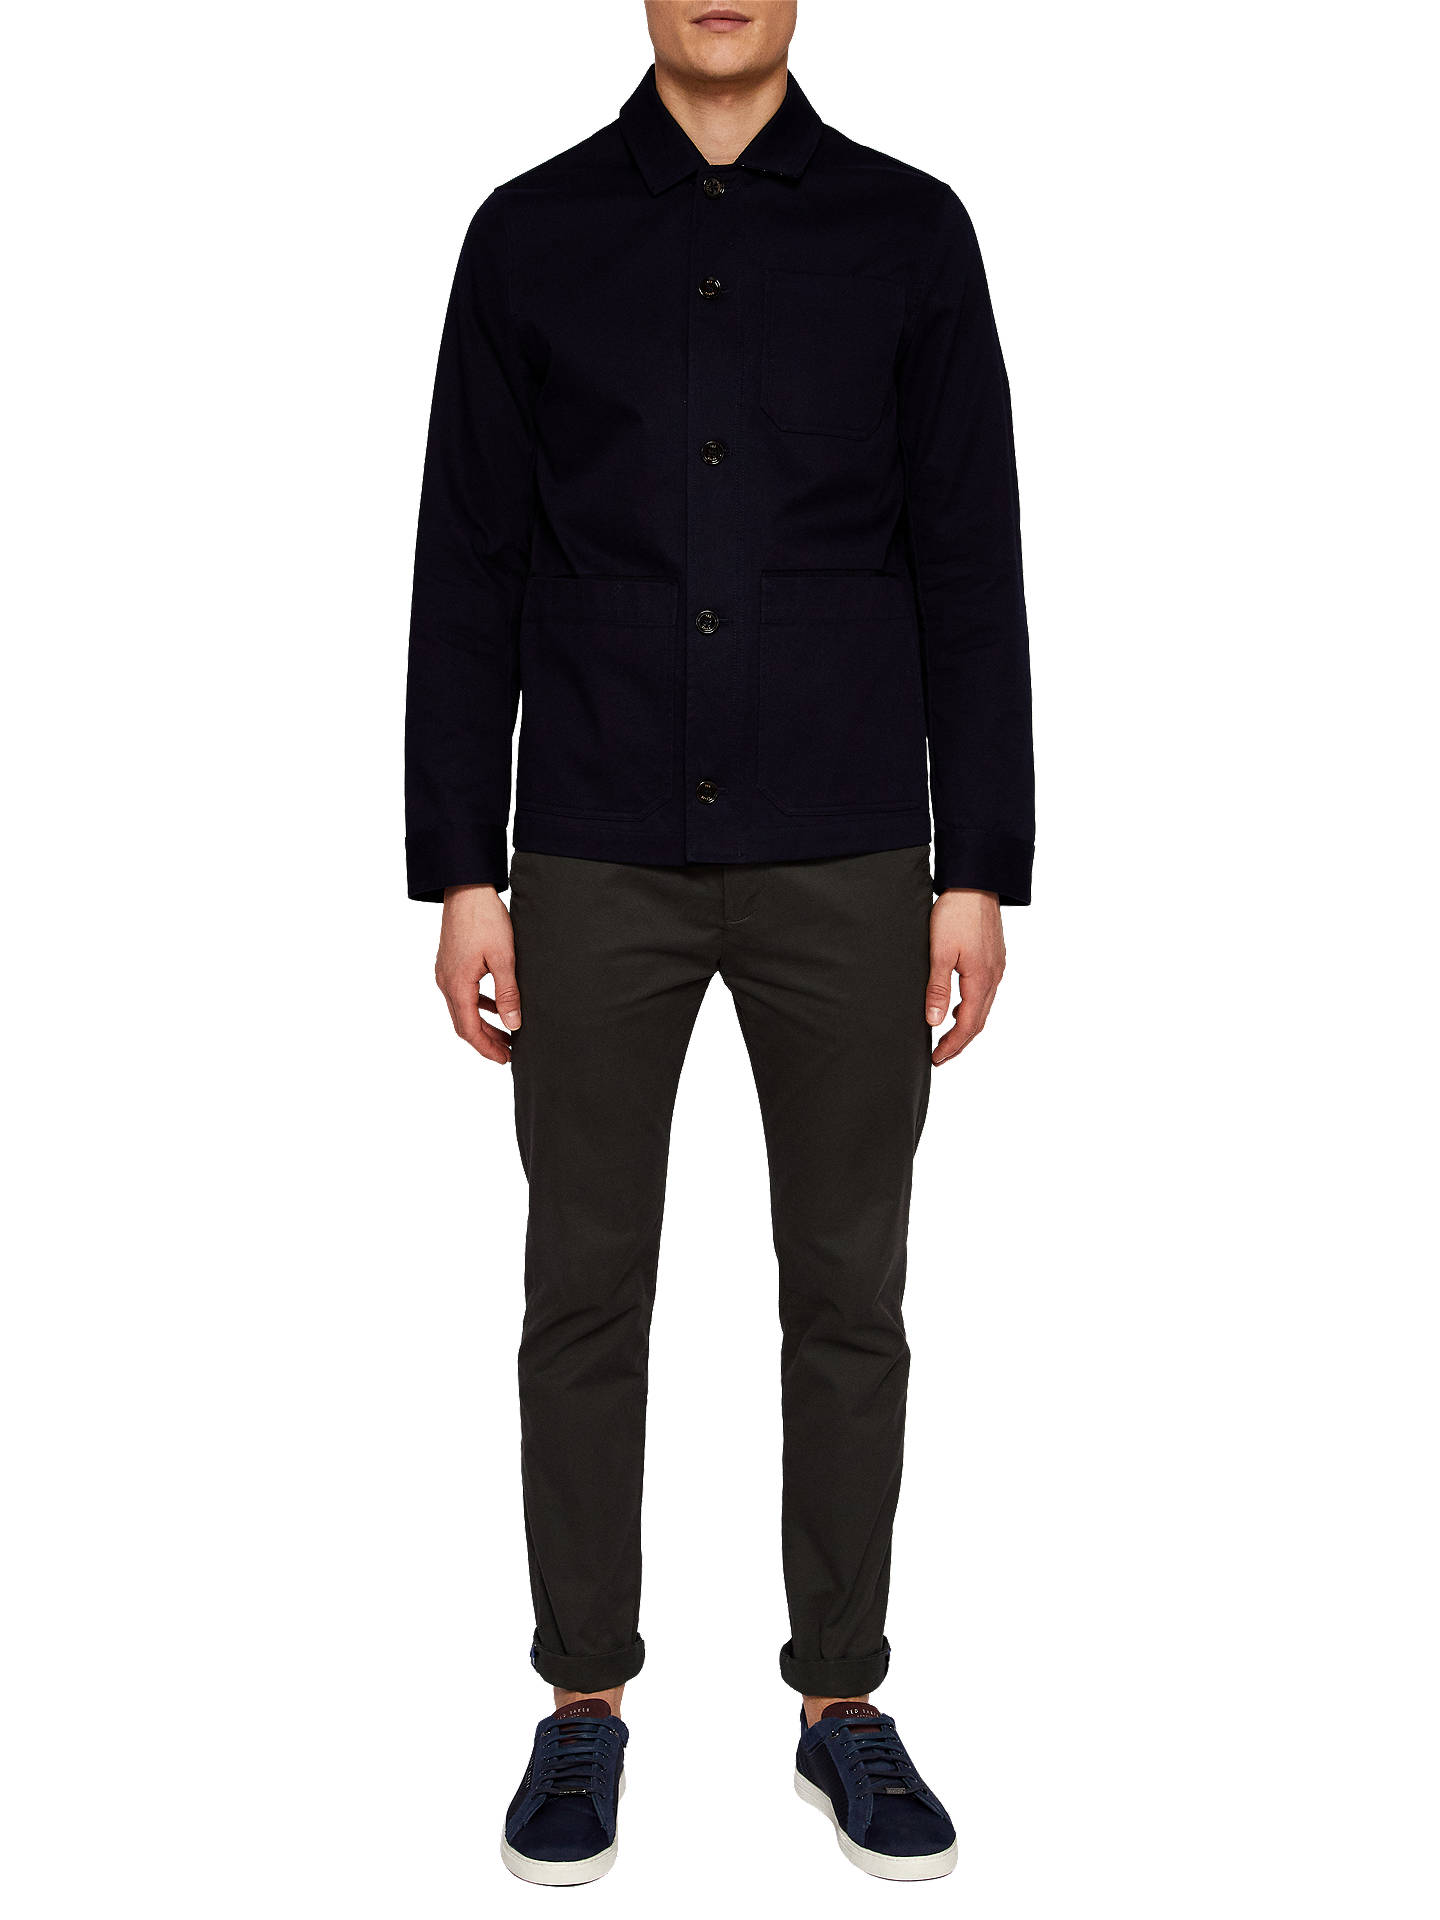 BuyTed Baker Grapes Cotton Utility Jacket, Navy, 2 Online at johnlewis.com